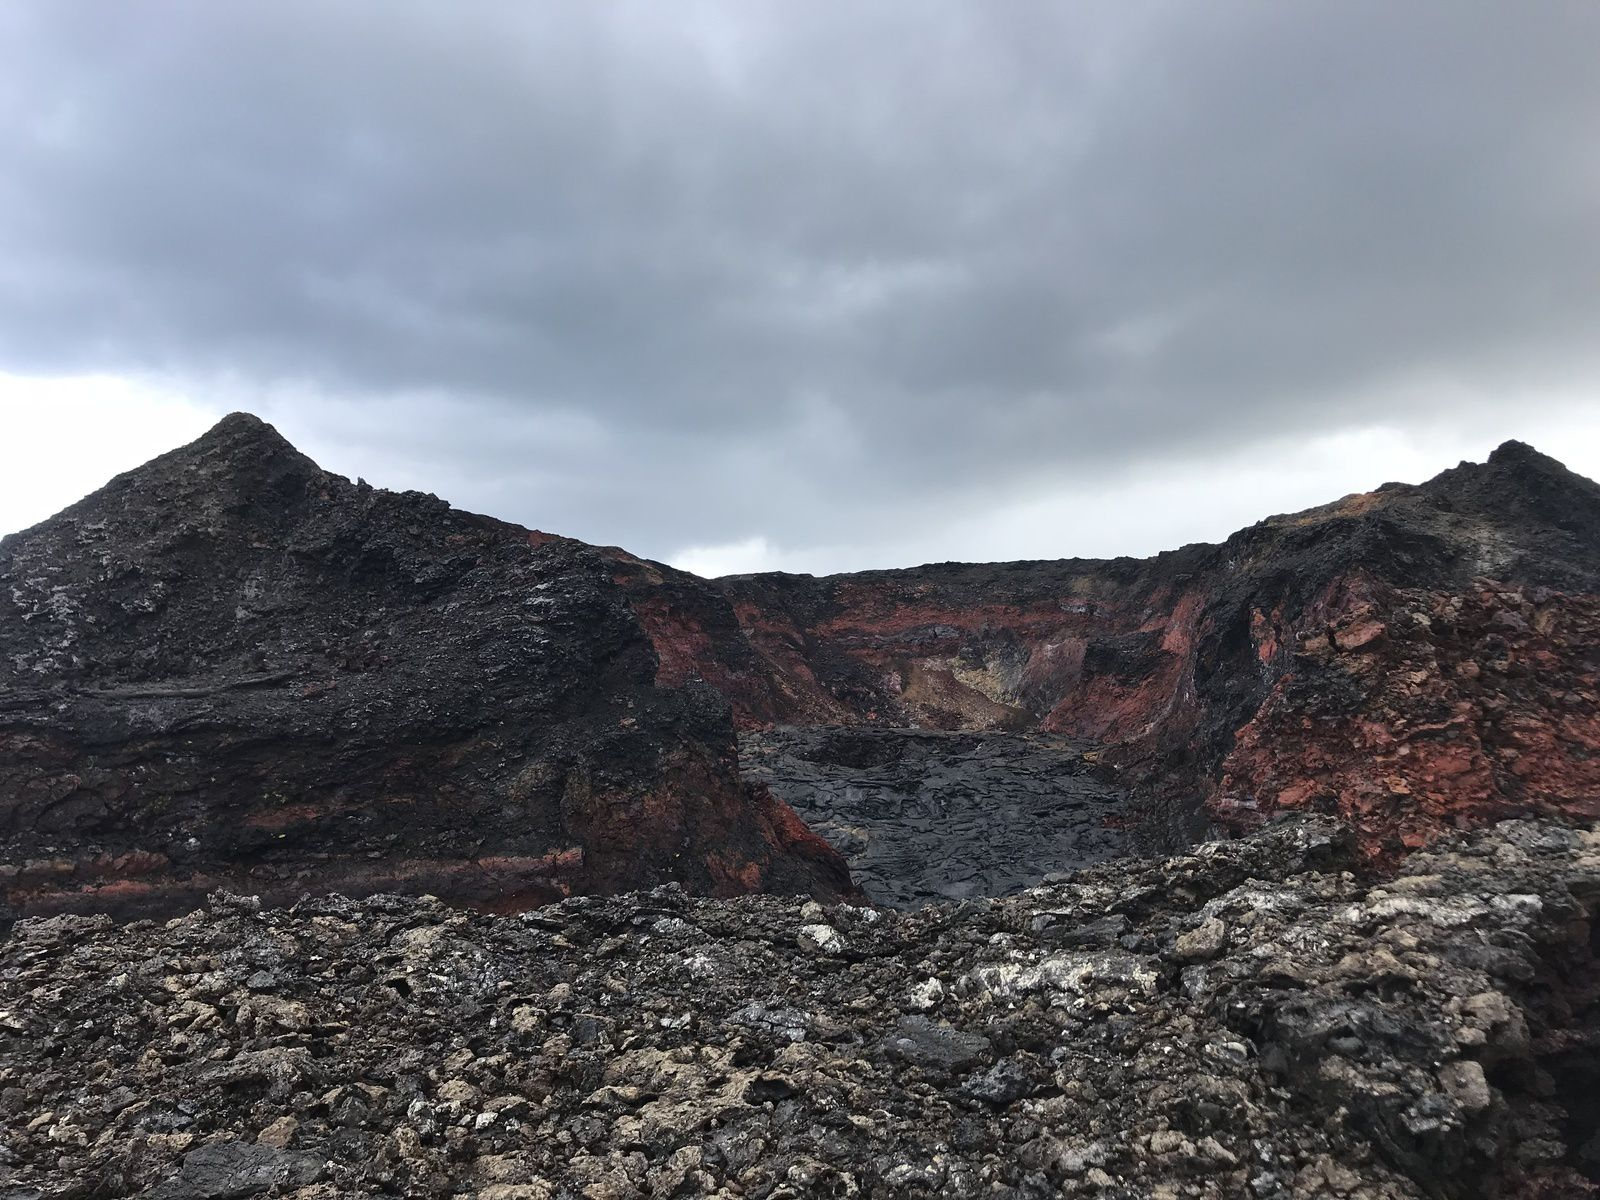 Kilauea - On June 3rd, an HVO field geologist went to the site of Webcam Fissure8 in the Lower East Rift Zone of Kīlauea Volcano, to change the batteries of the webcam and visually observe the cone and the inside of the fissure8. No steam or fumes were visible and only a slight smell of sulfur was detected momentarily. - USGS image by C. Parcheta.